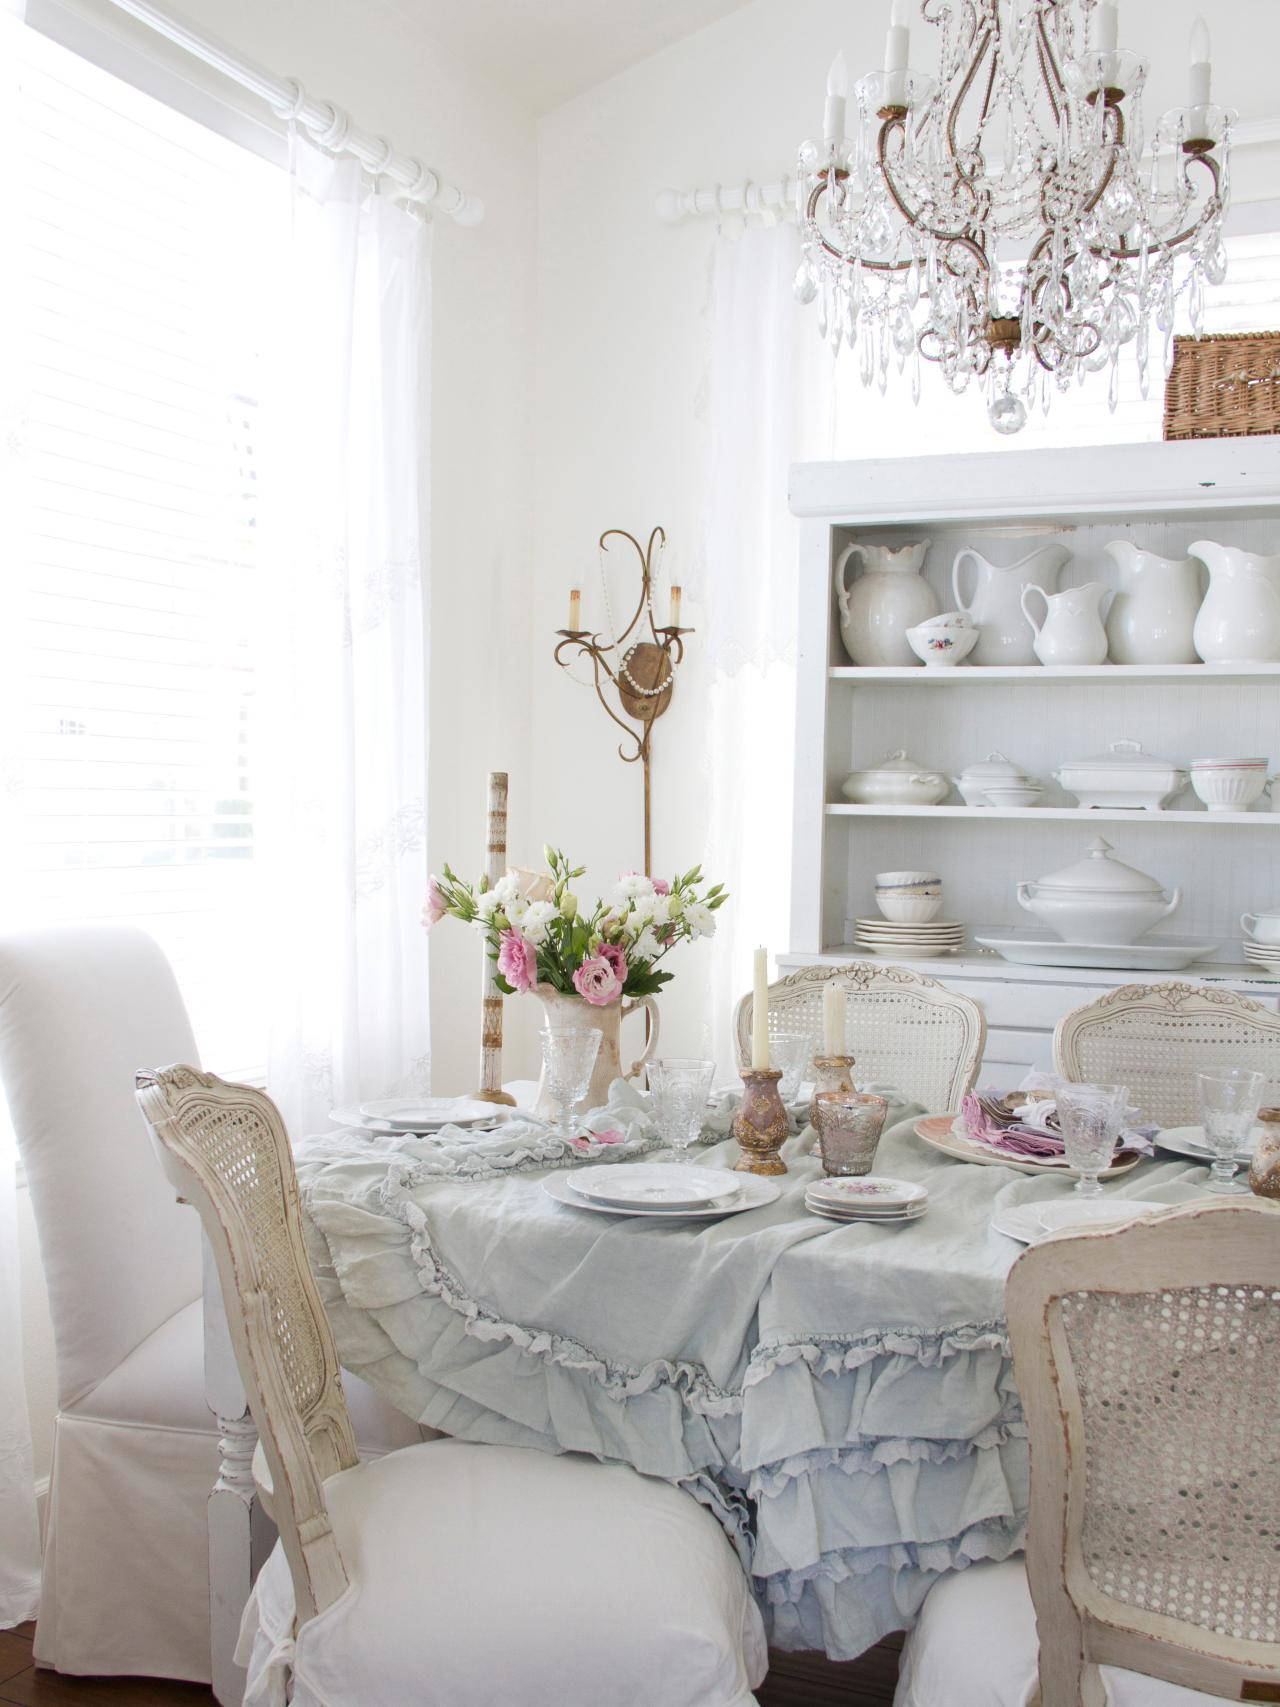 Shabby Chic Decor Home Decor Accessories Furniture